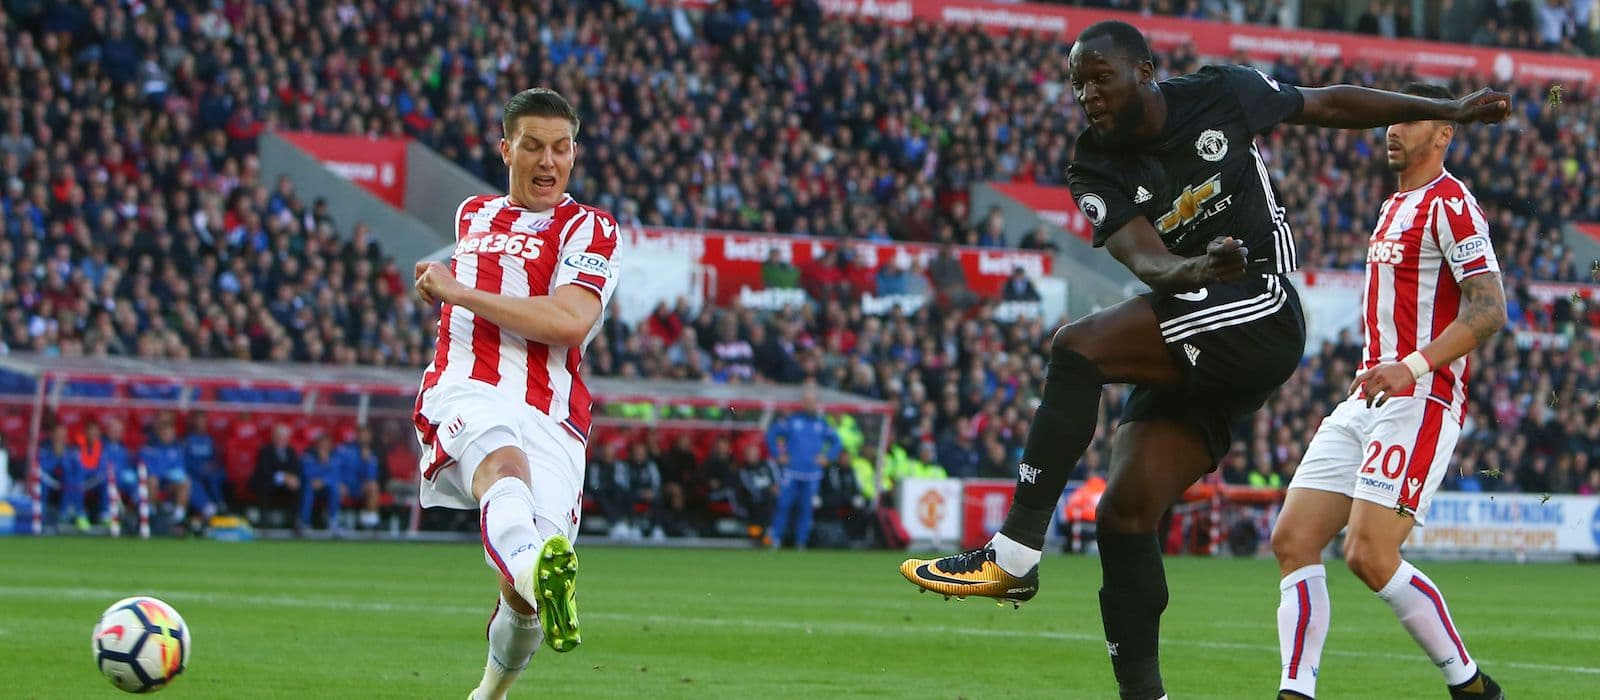 Red Thoughts: Why didn't Man United get 3 points against Stoke?